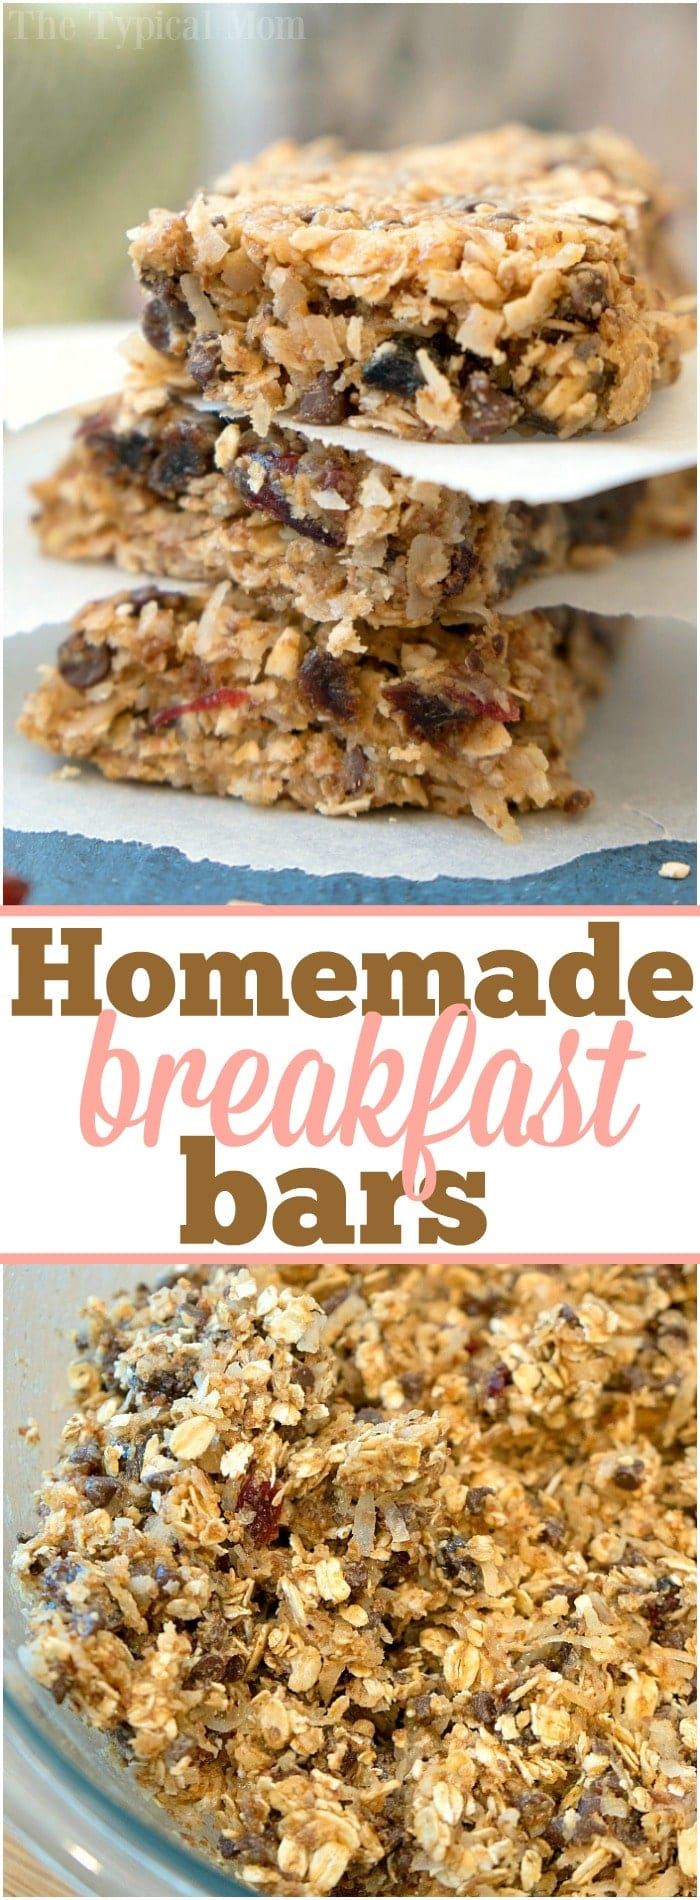 These easy homemade granola bars are delicious and super chewy! Packed with oats, coconuts and a bit of chocolate they're great for breakfast or a snack!